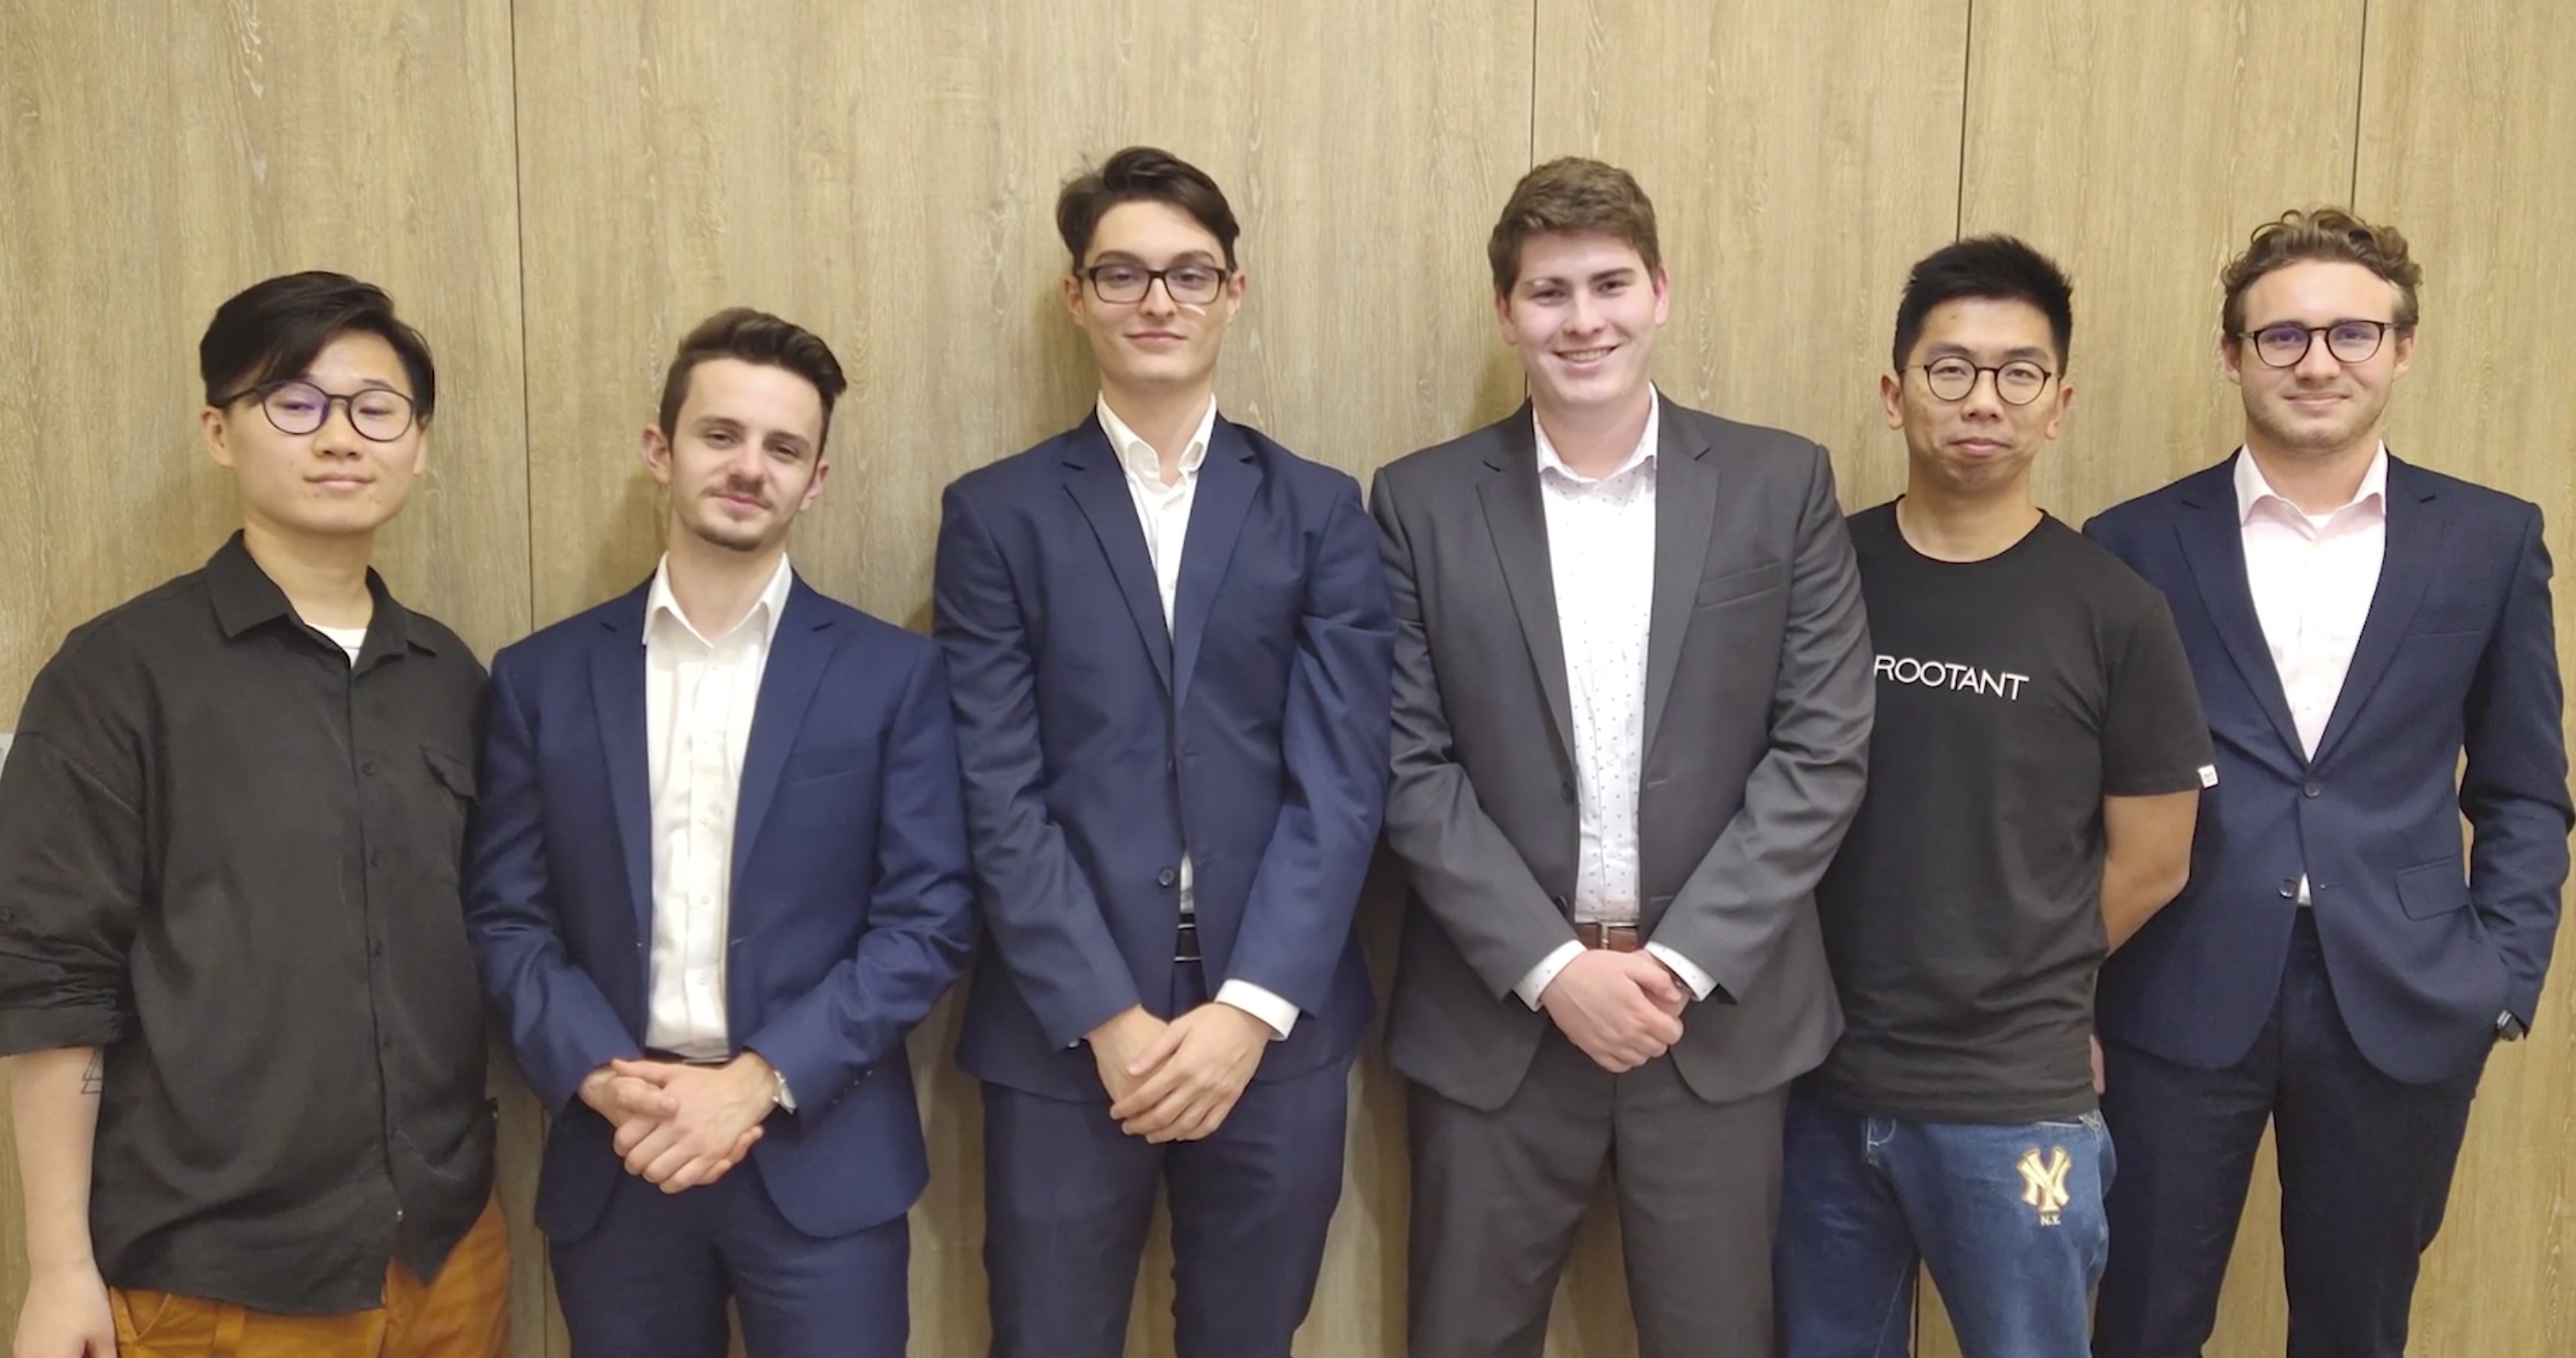 FOUR CREDIT SUISSE APPRENTICES WORKING IN SHANGHAI IN A MOBILITY PROGRAM